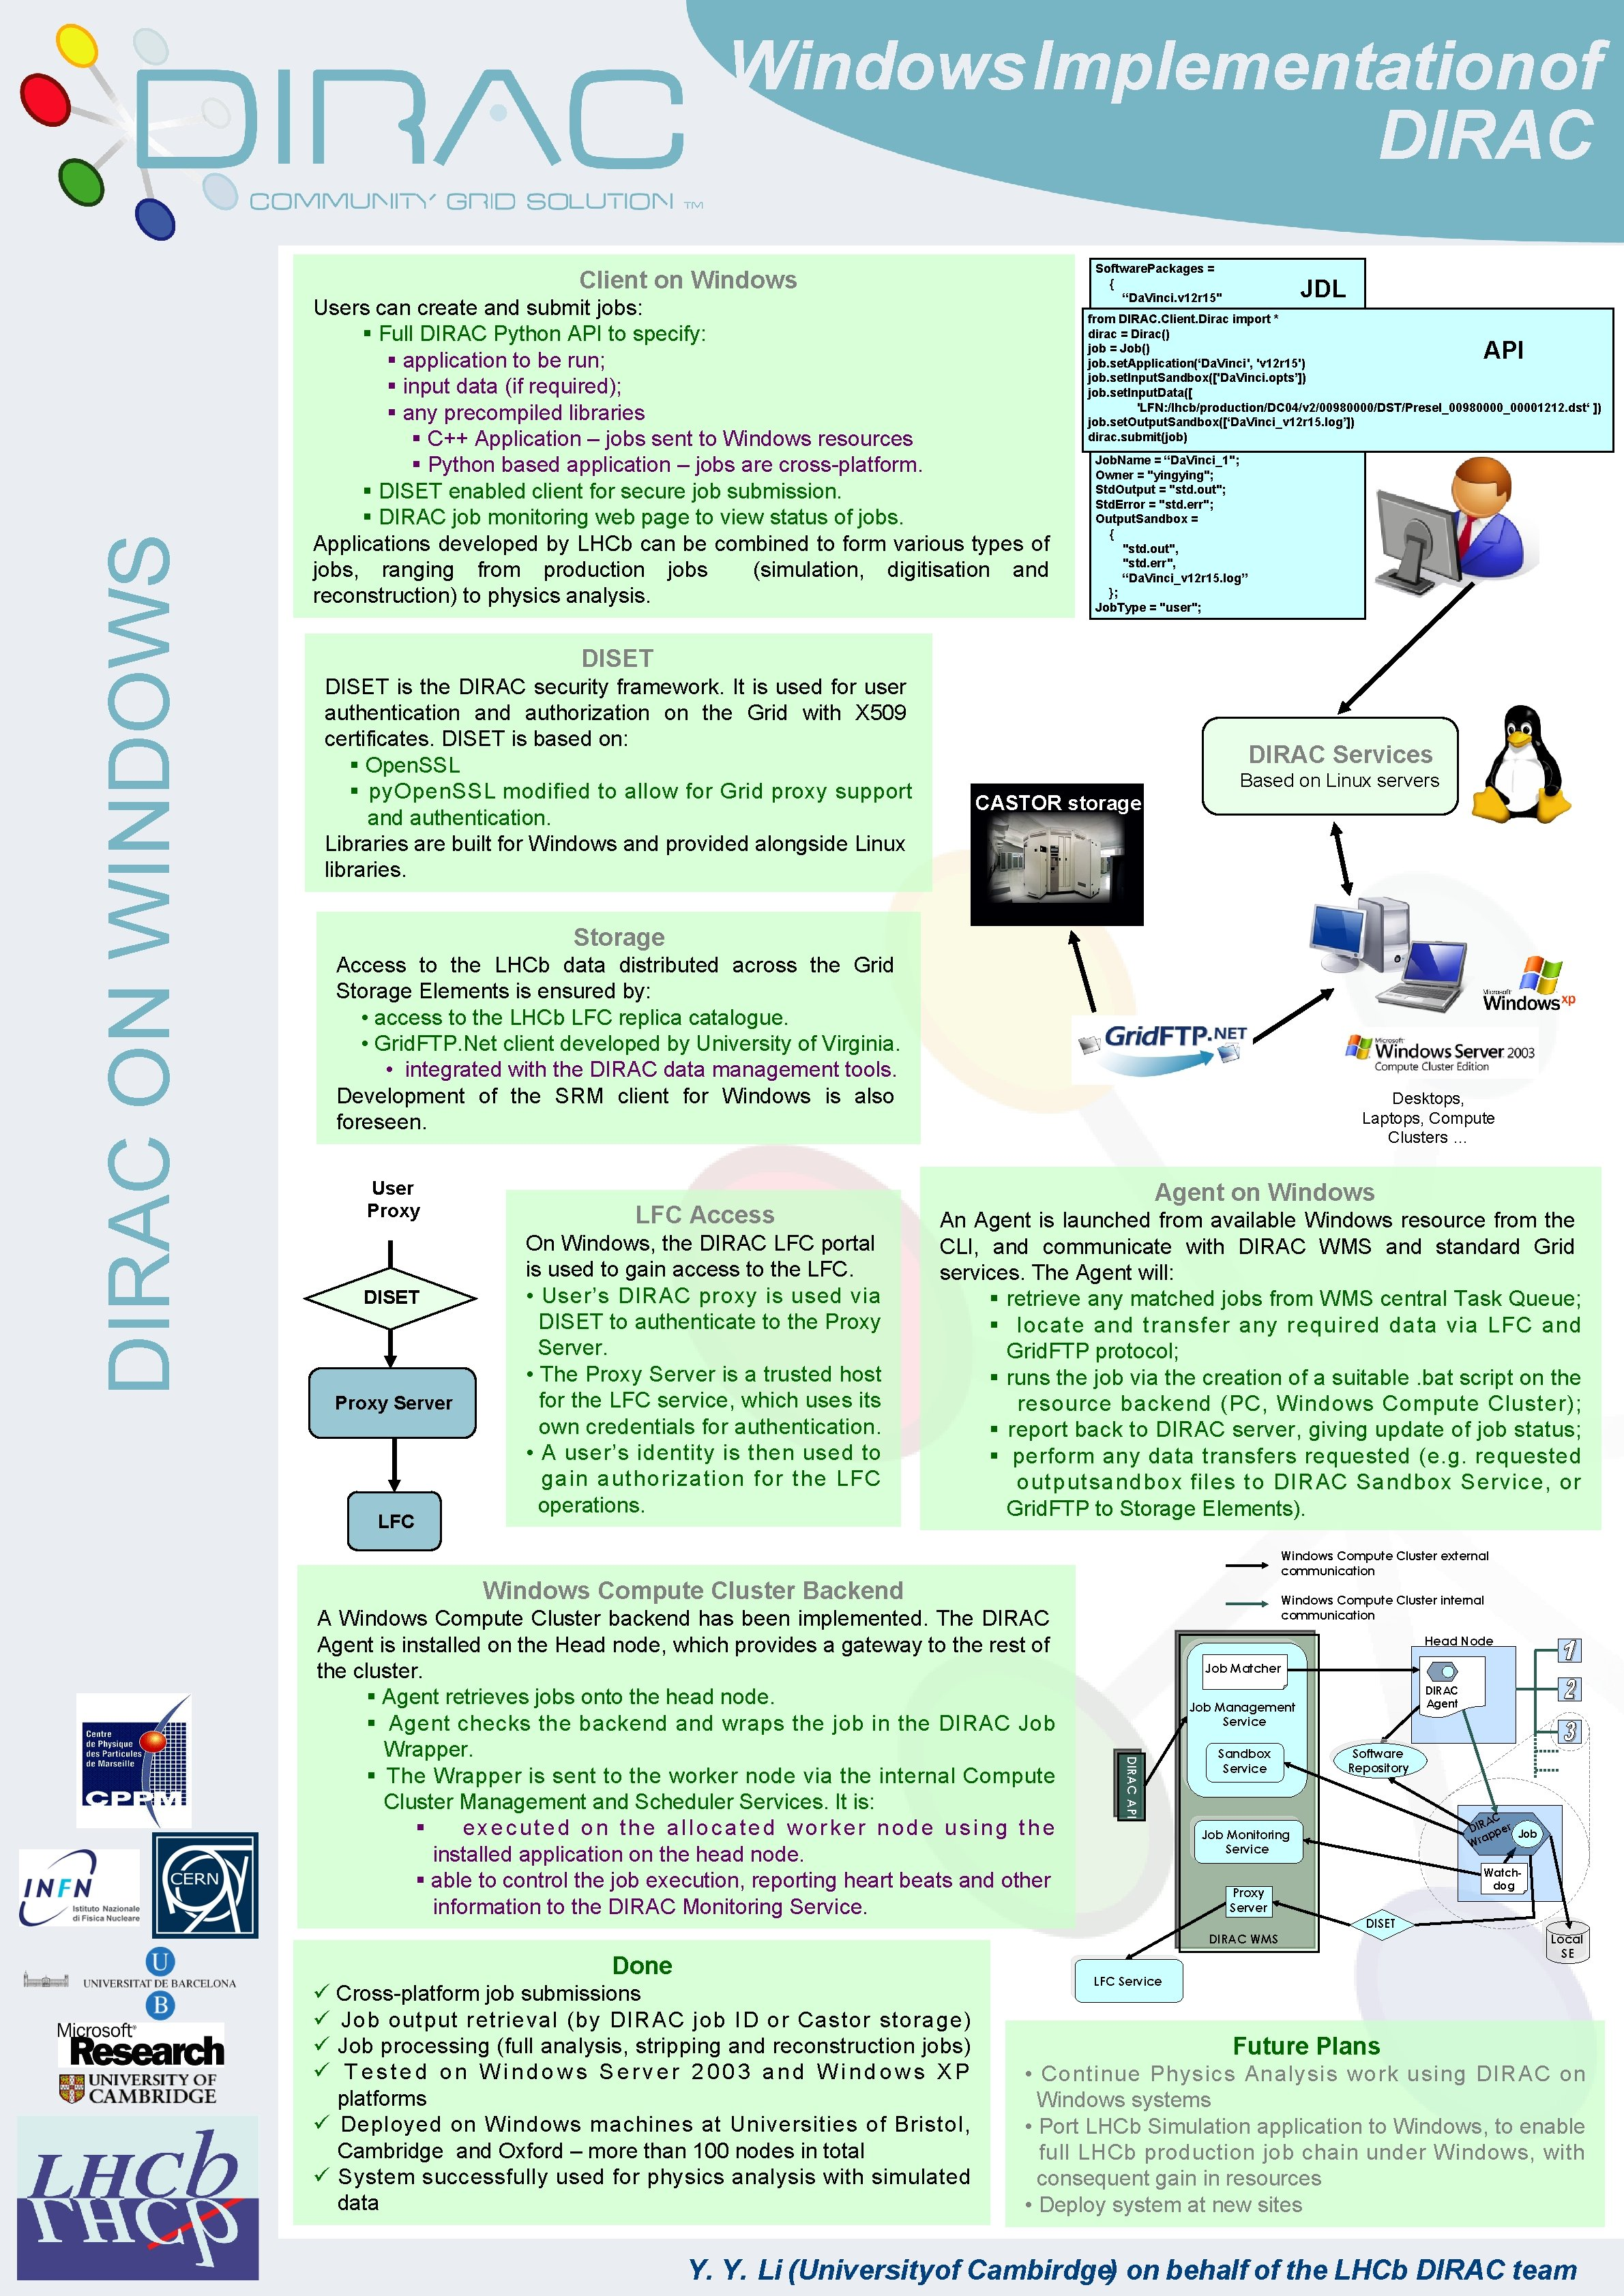 Windows Implementationof DIRAC ON WINDOWS Client on Windows Users can create and submit jobs: